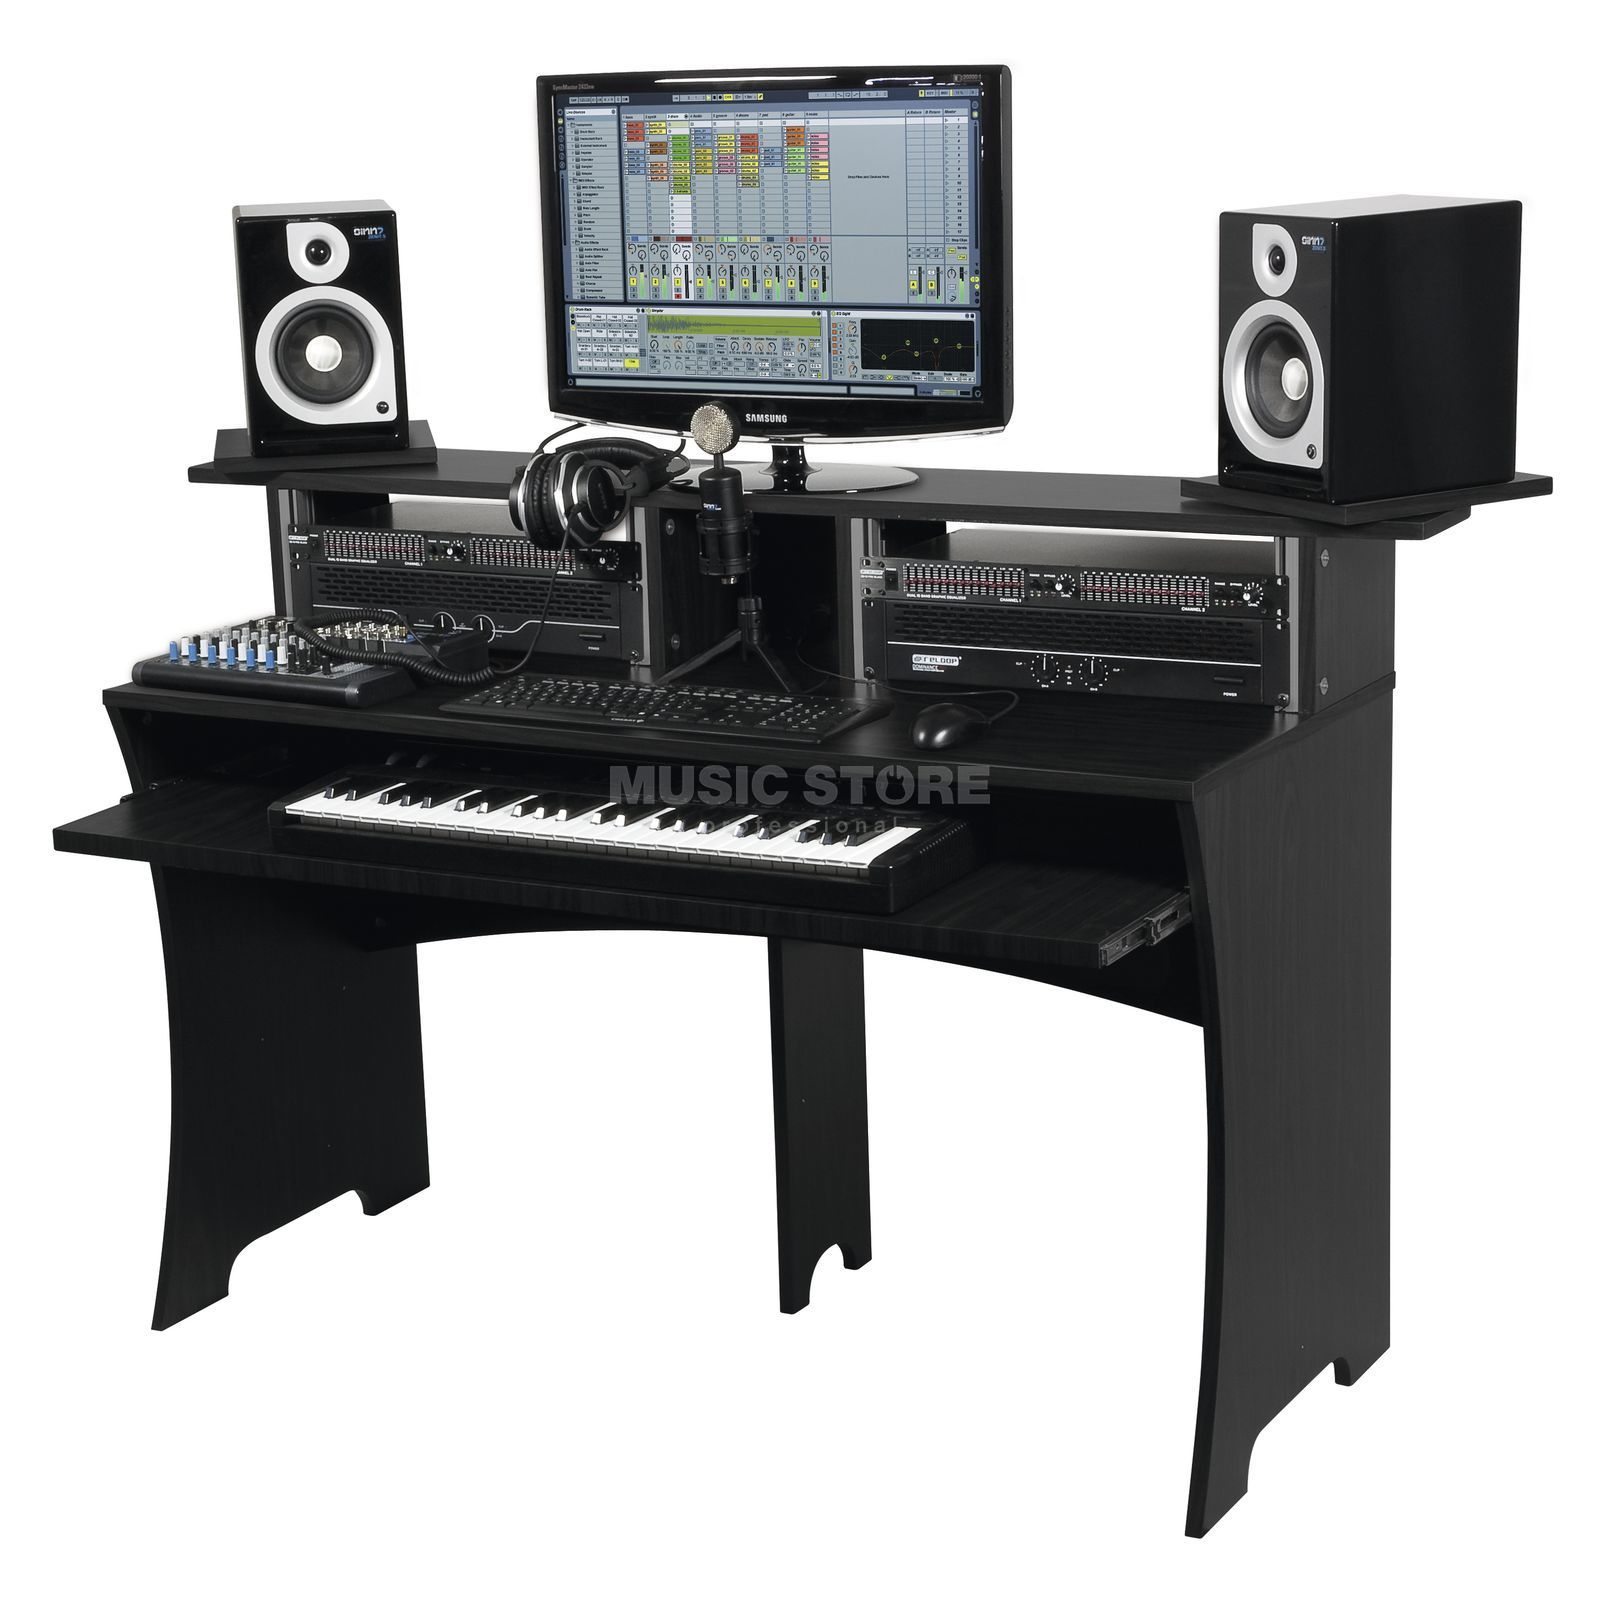 Glorious Workbench black REC DJ Workstation